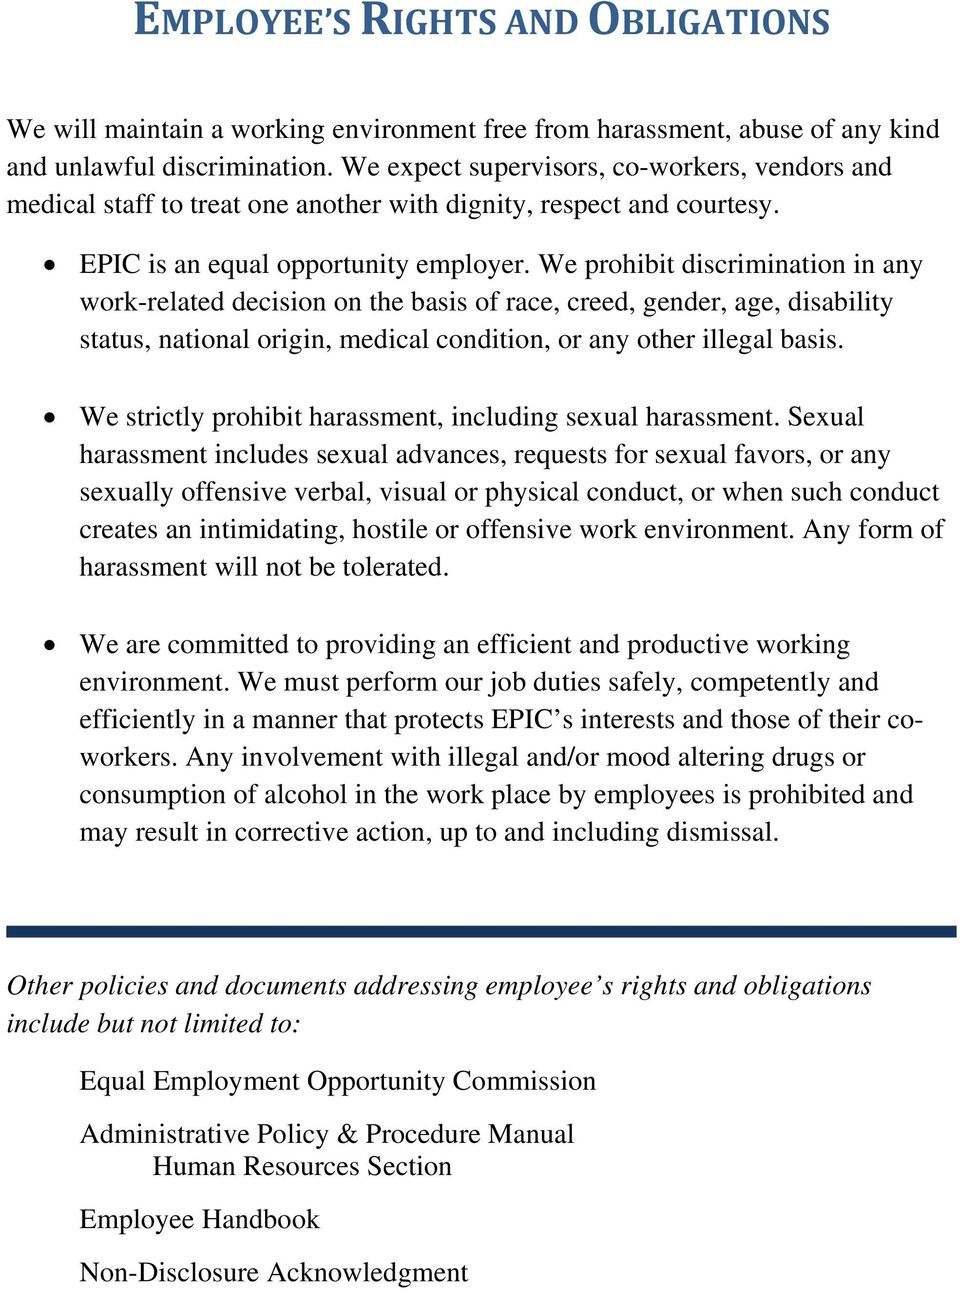 We prohibit discrimination in any work-related decision on the basis of race, creed, gender, age, disability status, national origin, medical condition, or any other illegal basis.